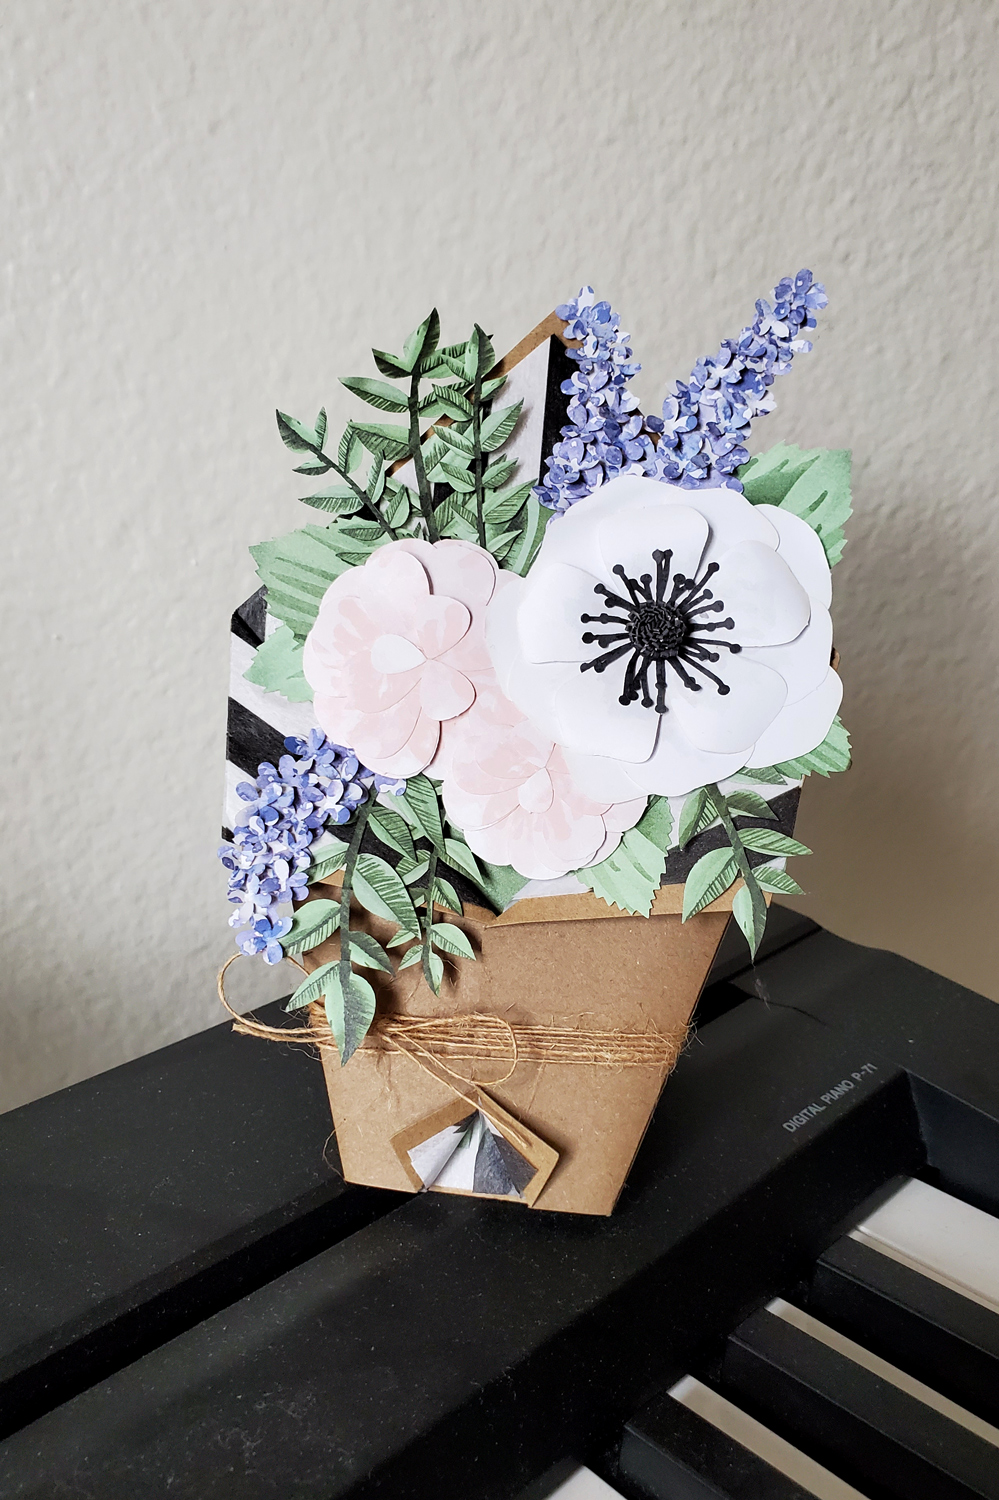 A beautiful papyrus card - flowers made of paper